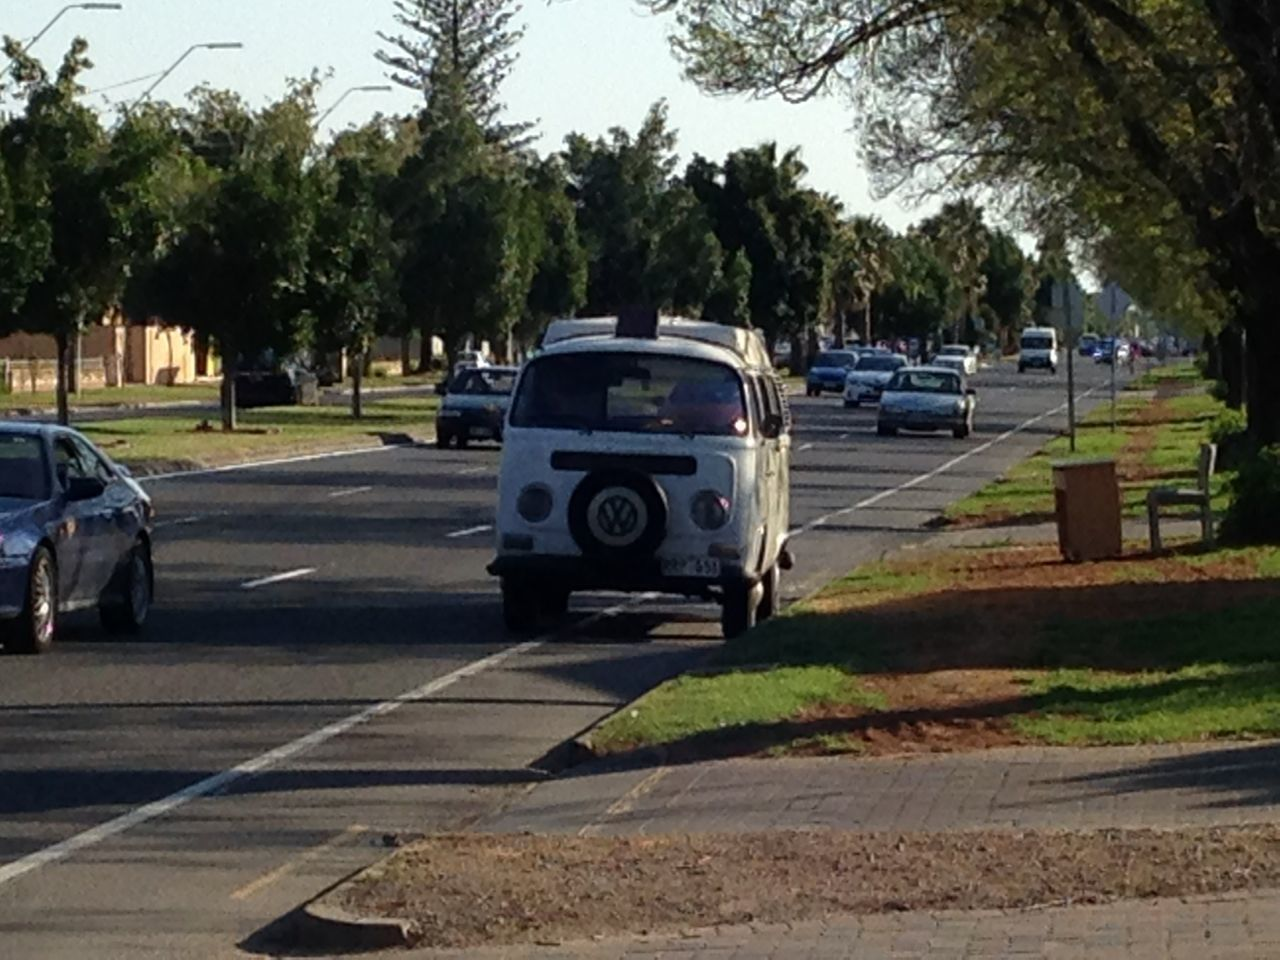 2d7188c1db04f68b0d28c9de.jpg - Spotted this early bay down anzac highway yesterday